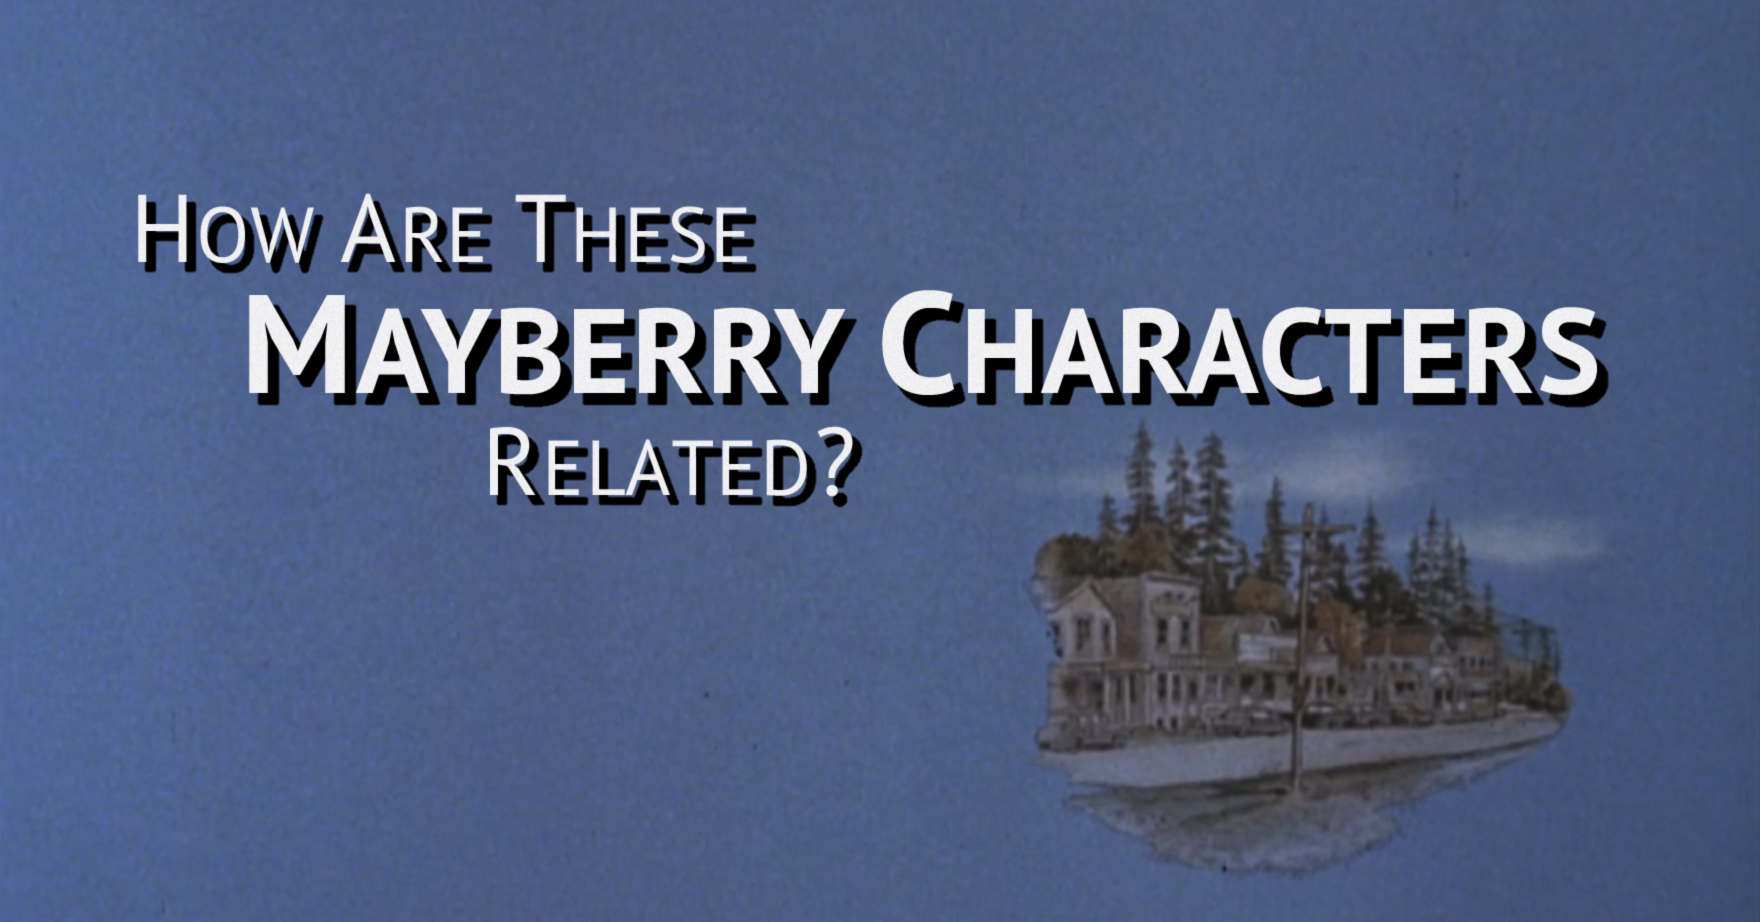 How are these Mayberry characters related?